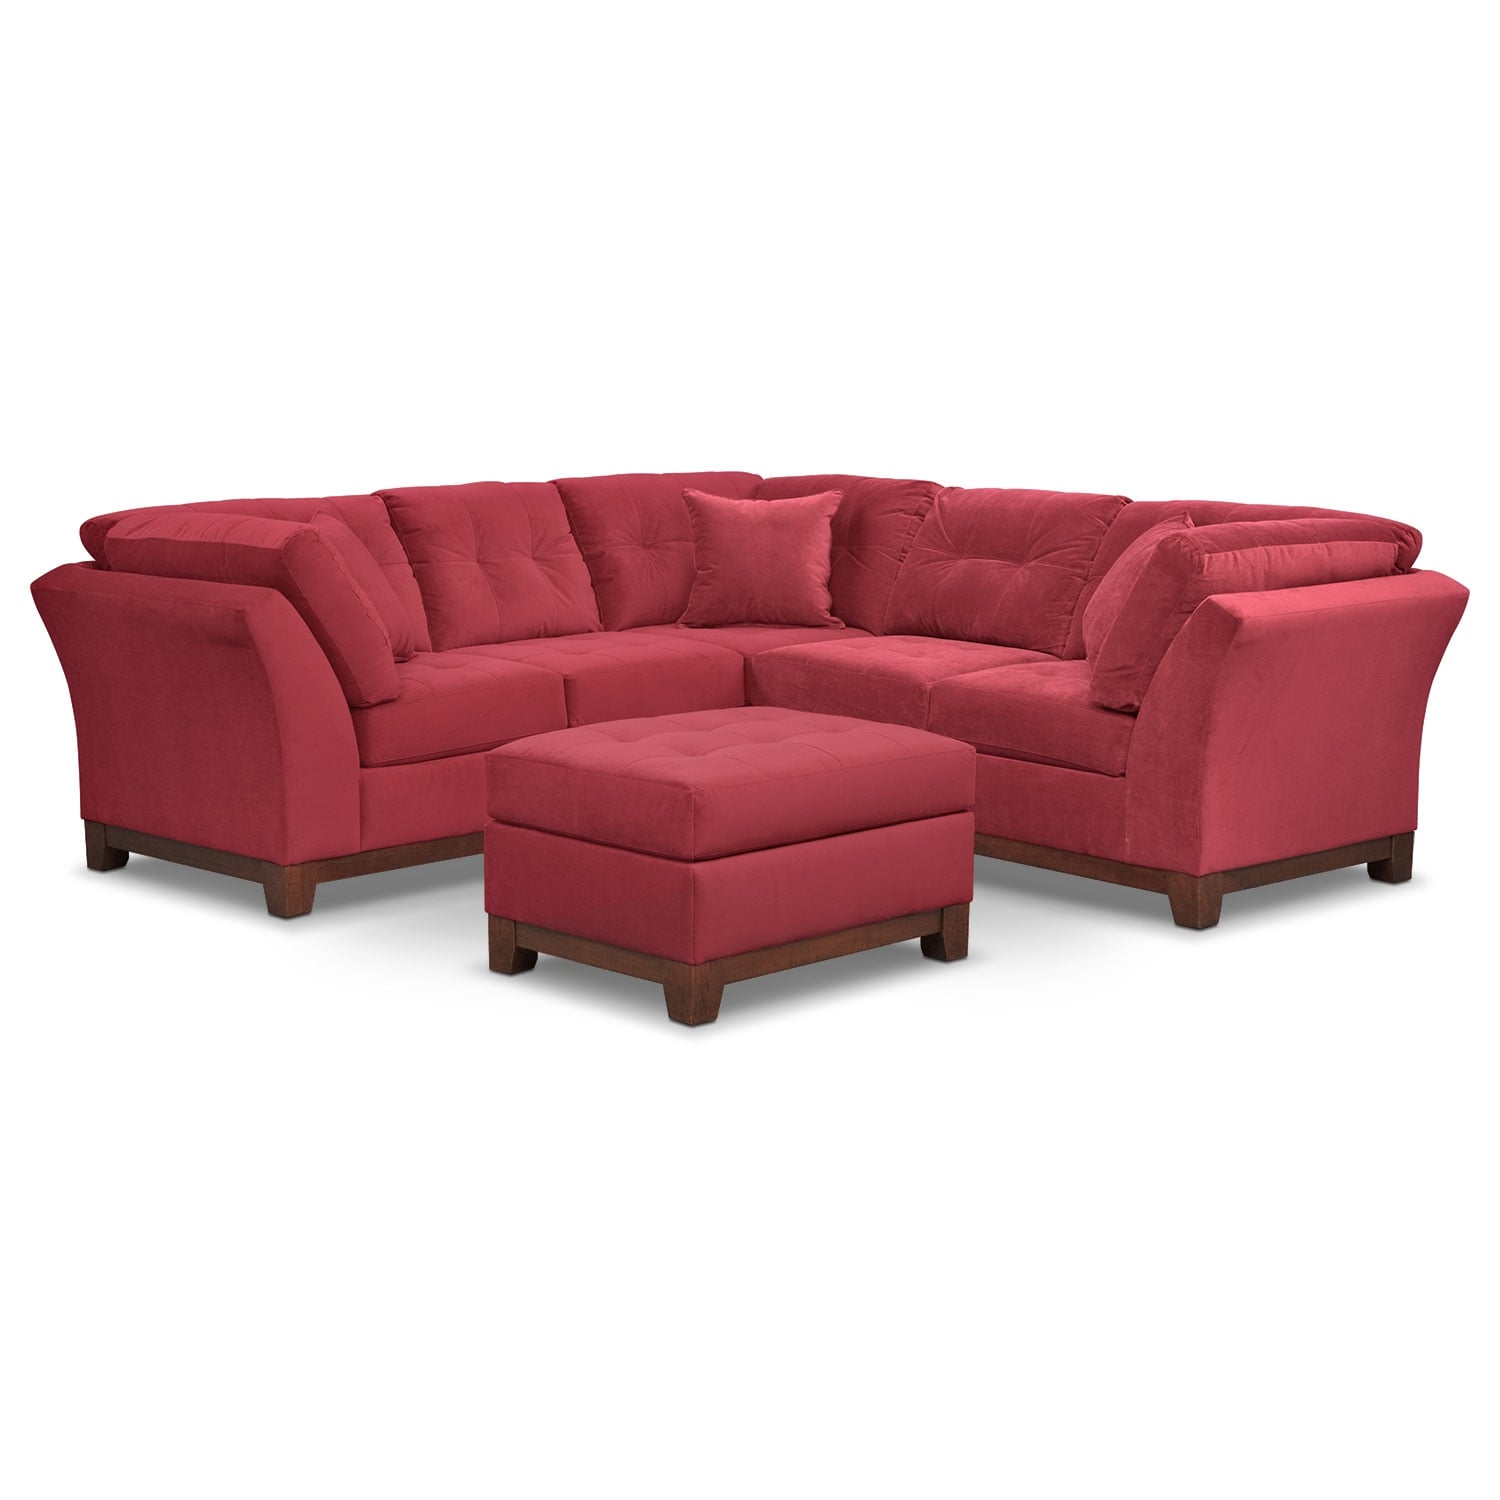 Living Room Furniture - Solace Poppy II 2 Pc. Sectional (Alternate II Reverse) and Ottoman